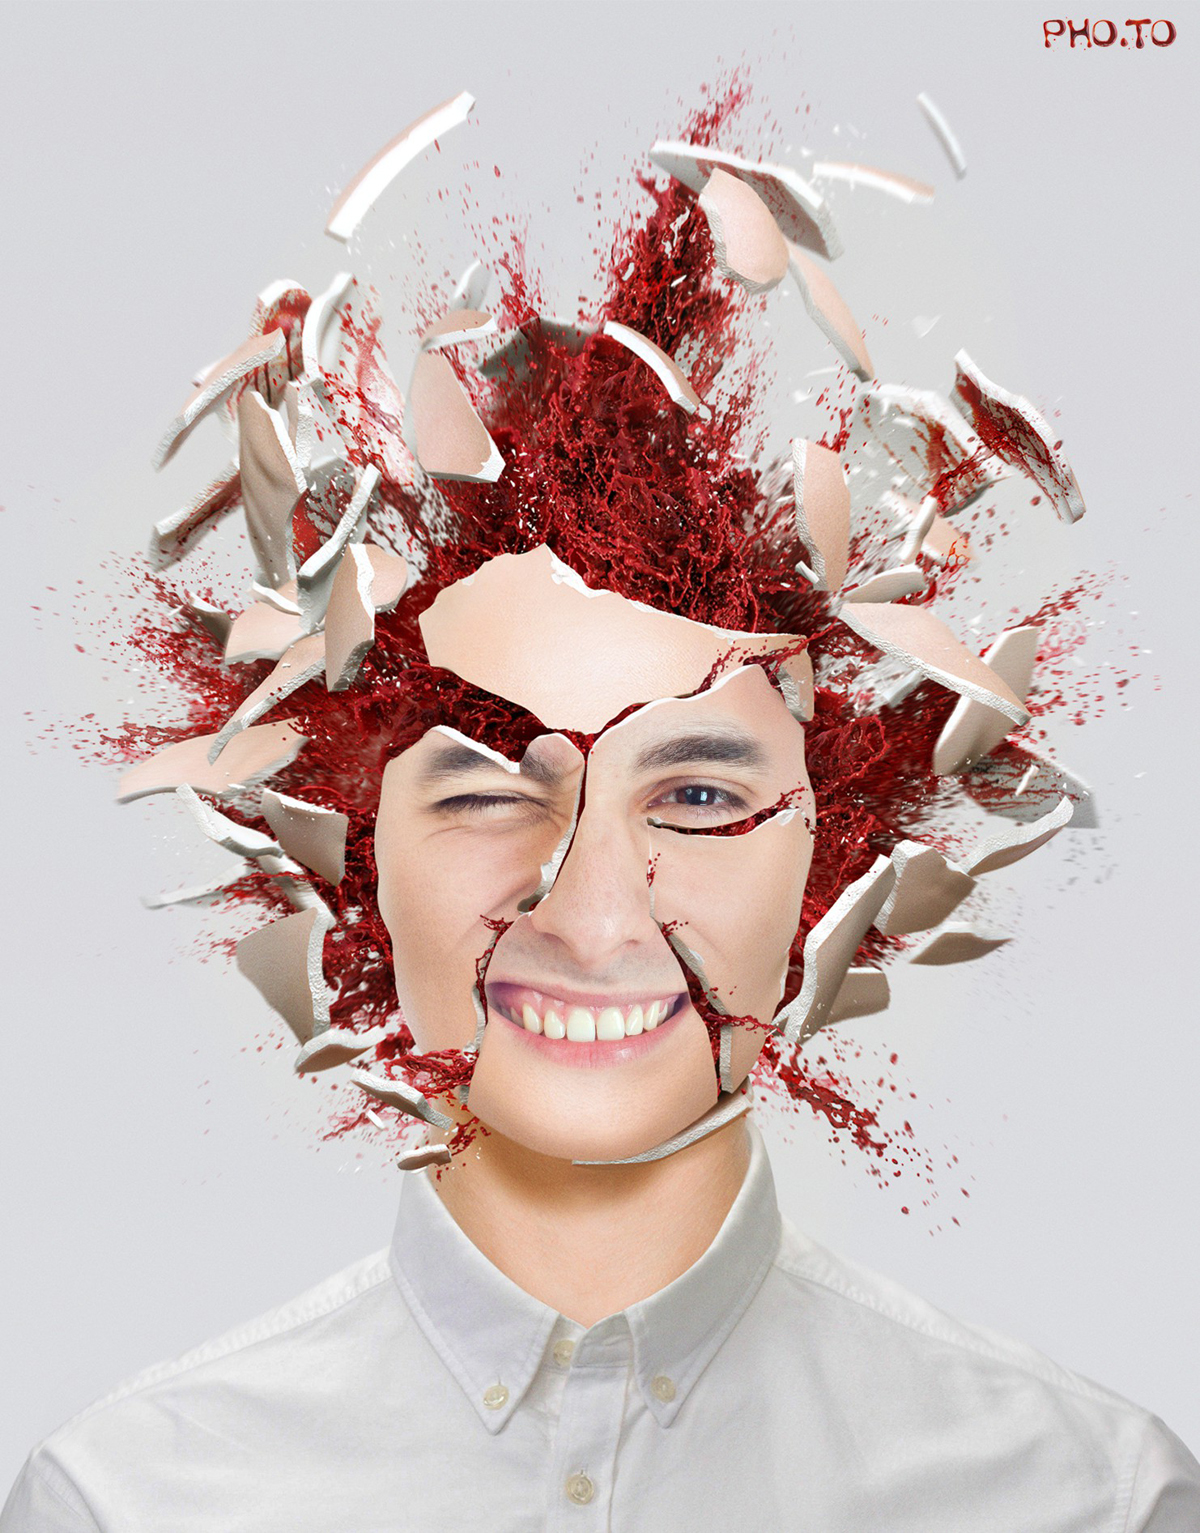 Scary photo effect with exploding brain.